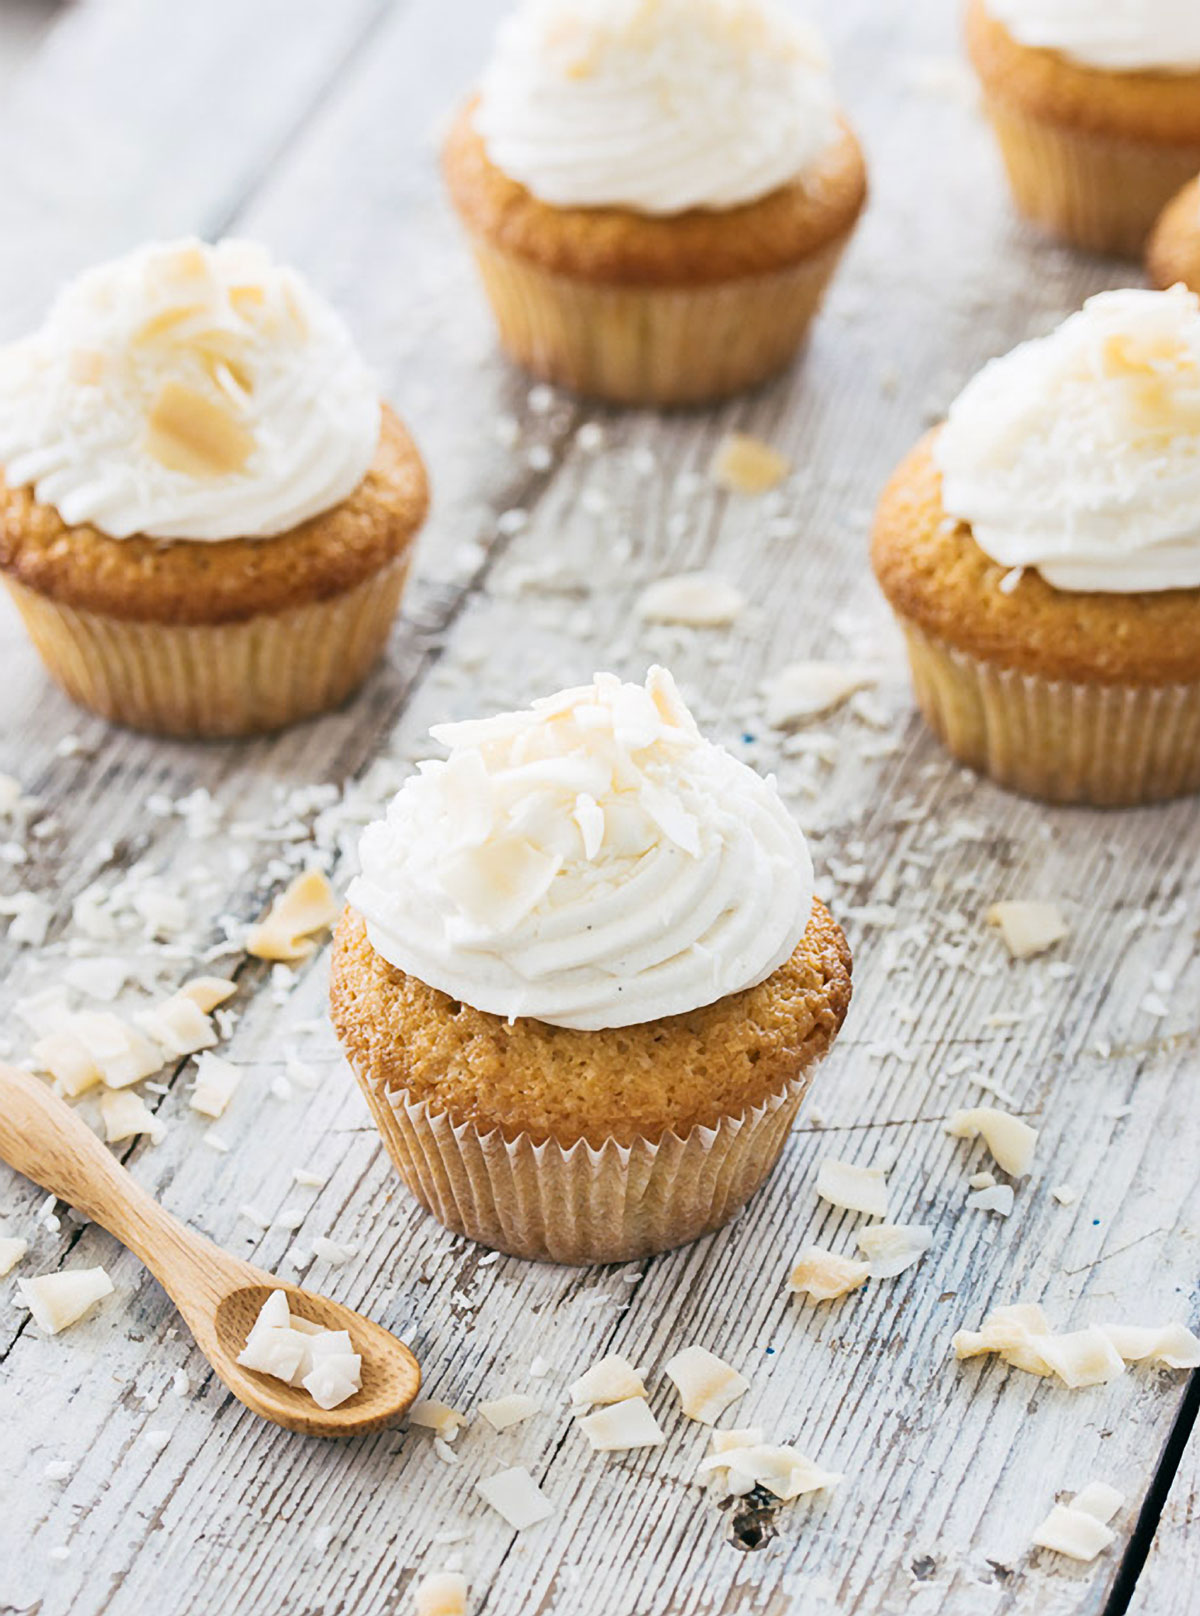 Coconut cupcakes topped with vanilla cream cheese frosting